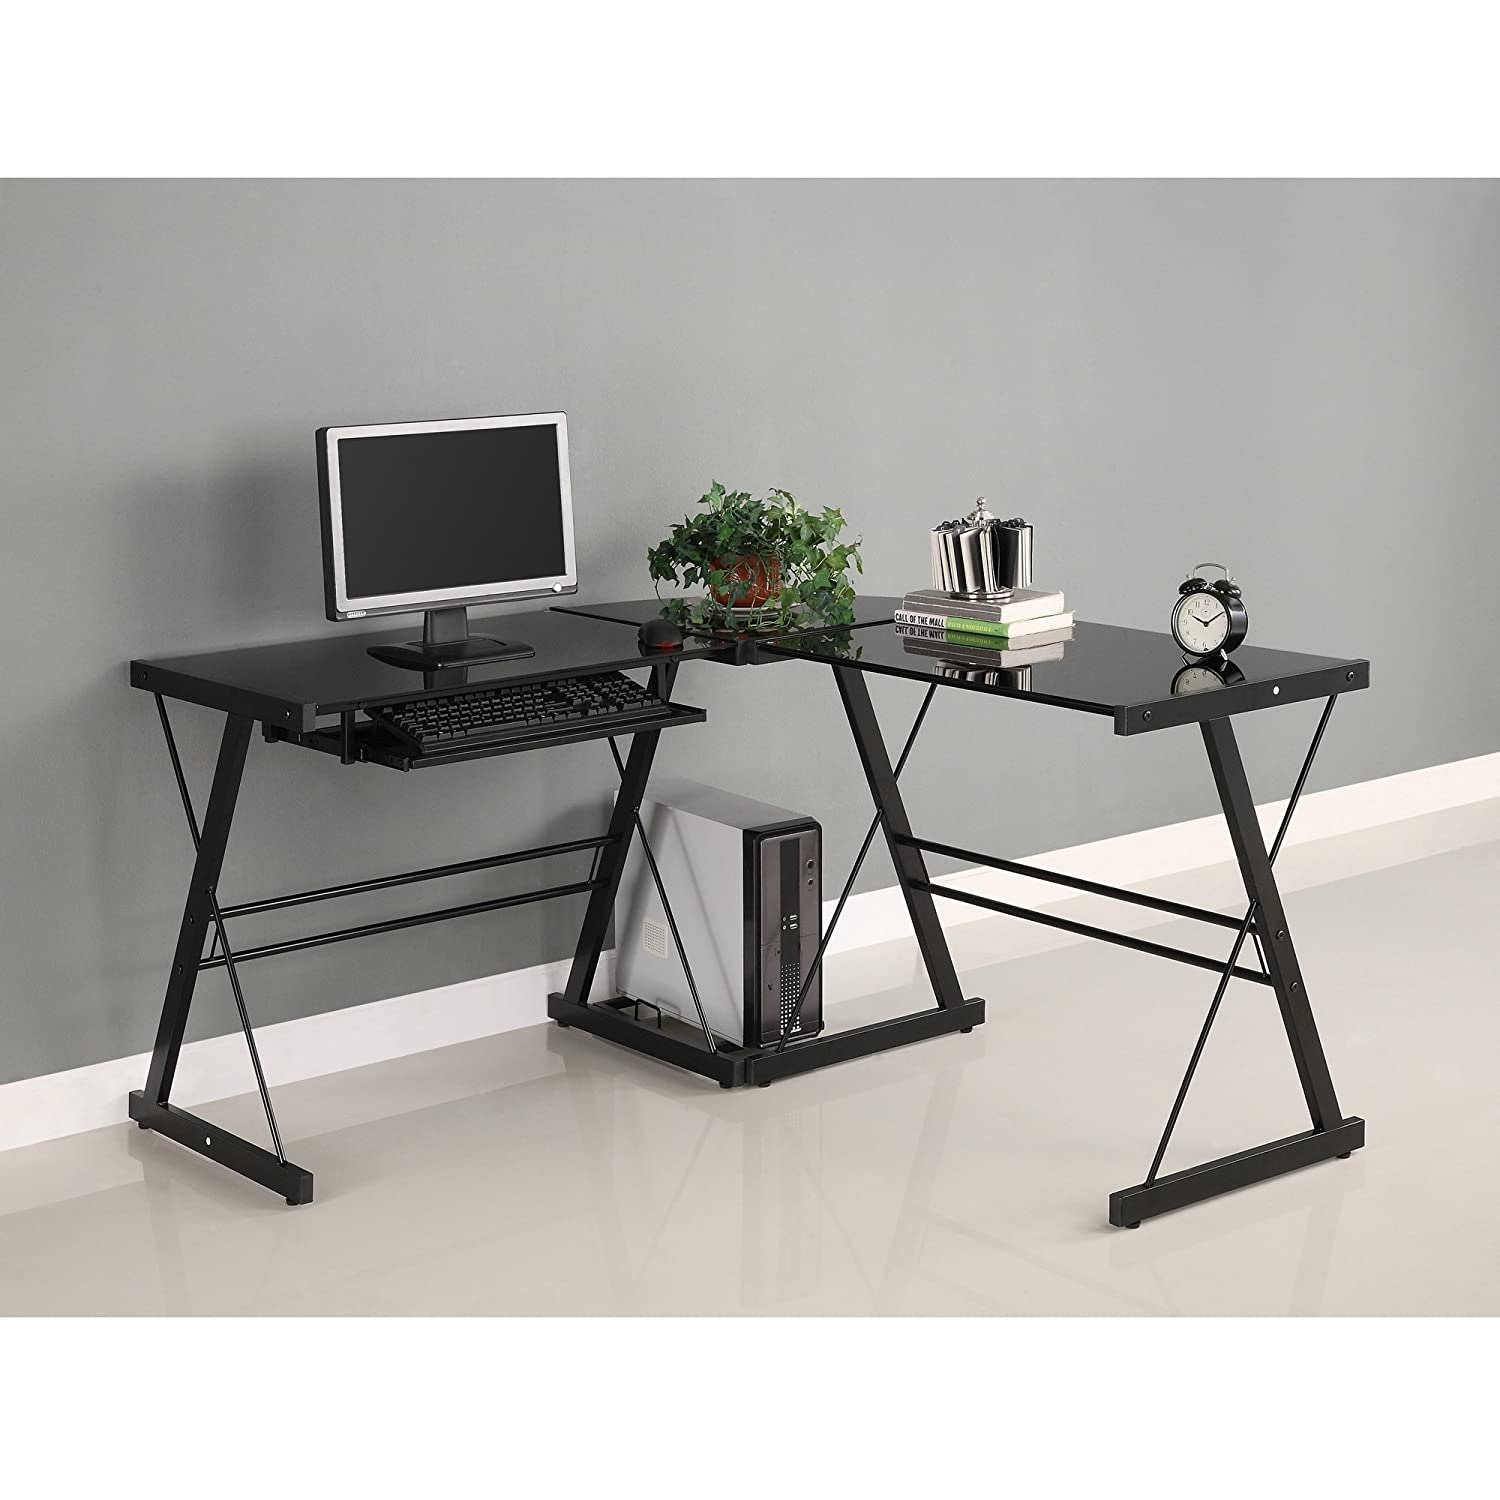 L Shaped Desk For Two People